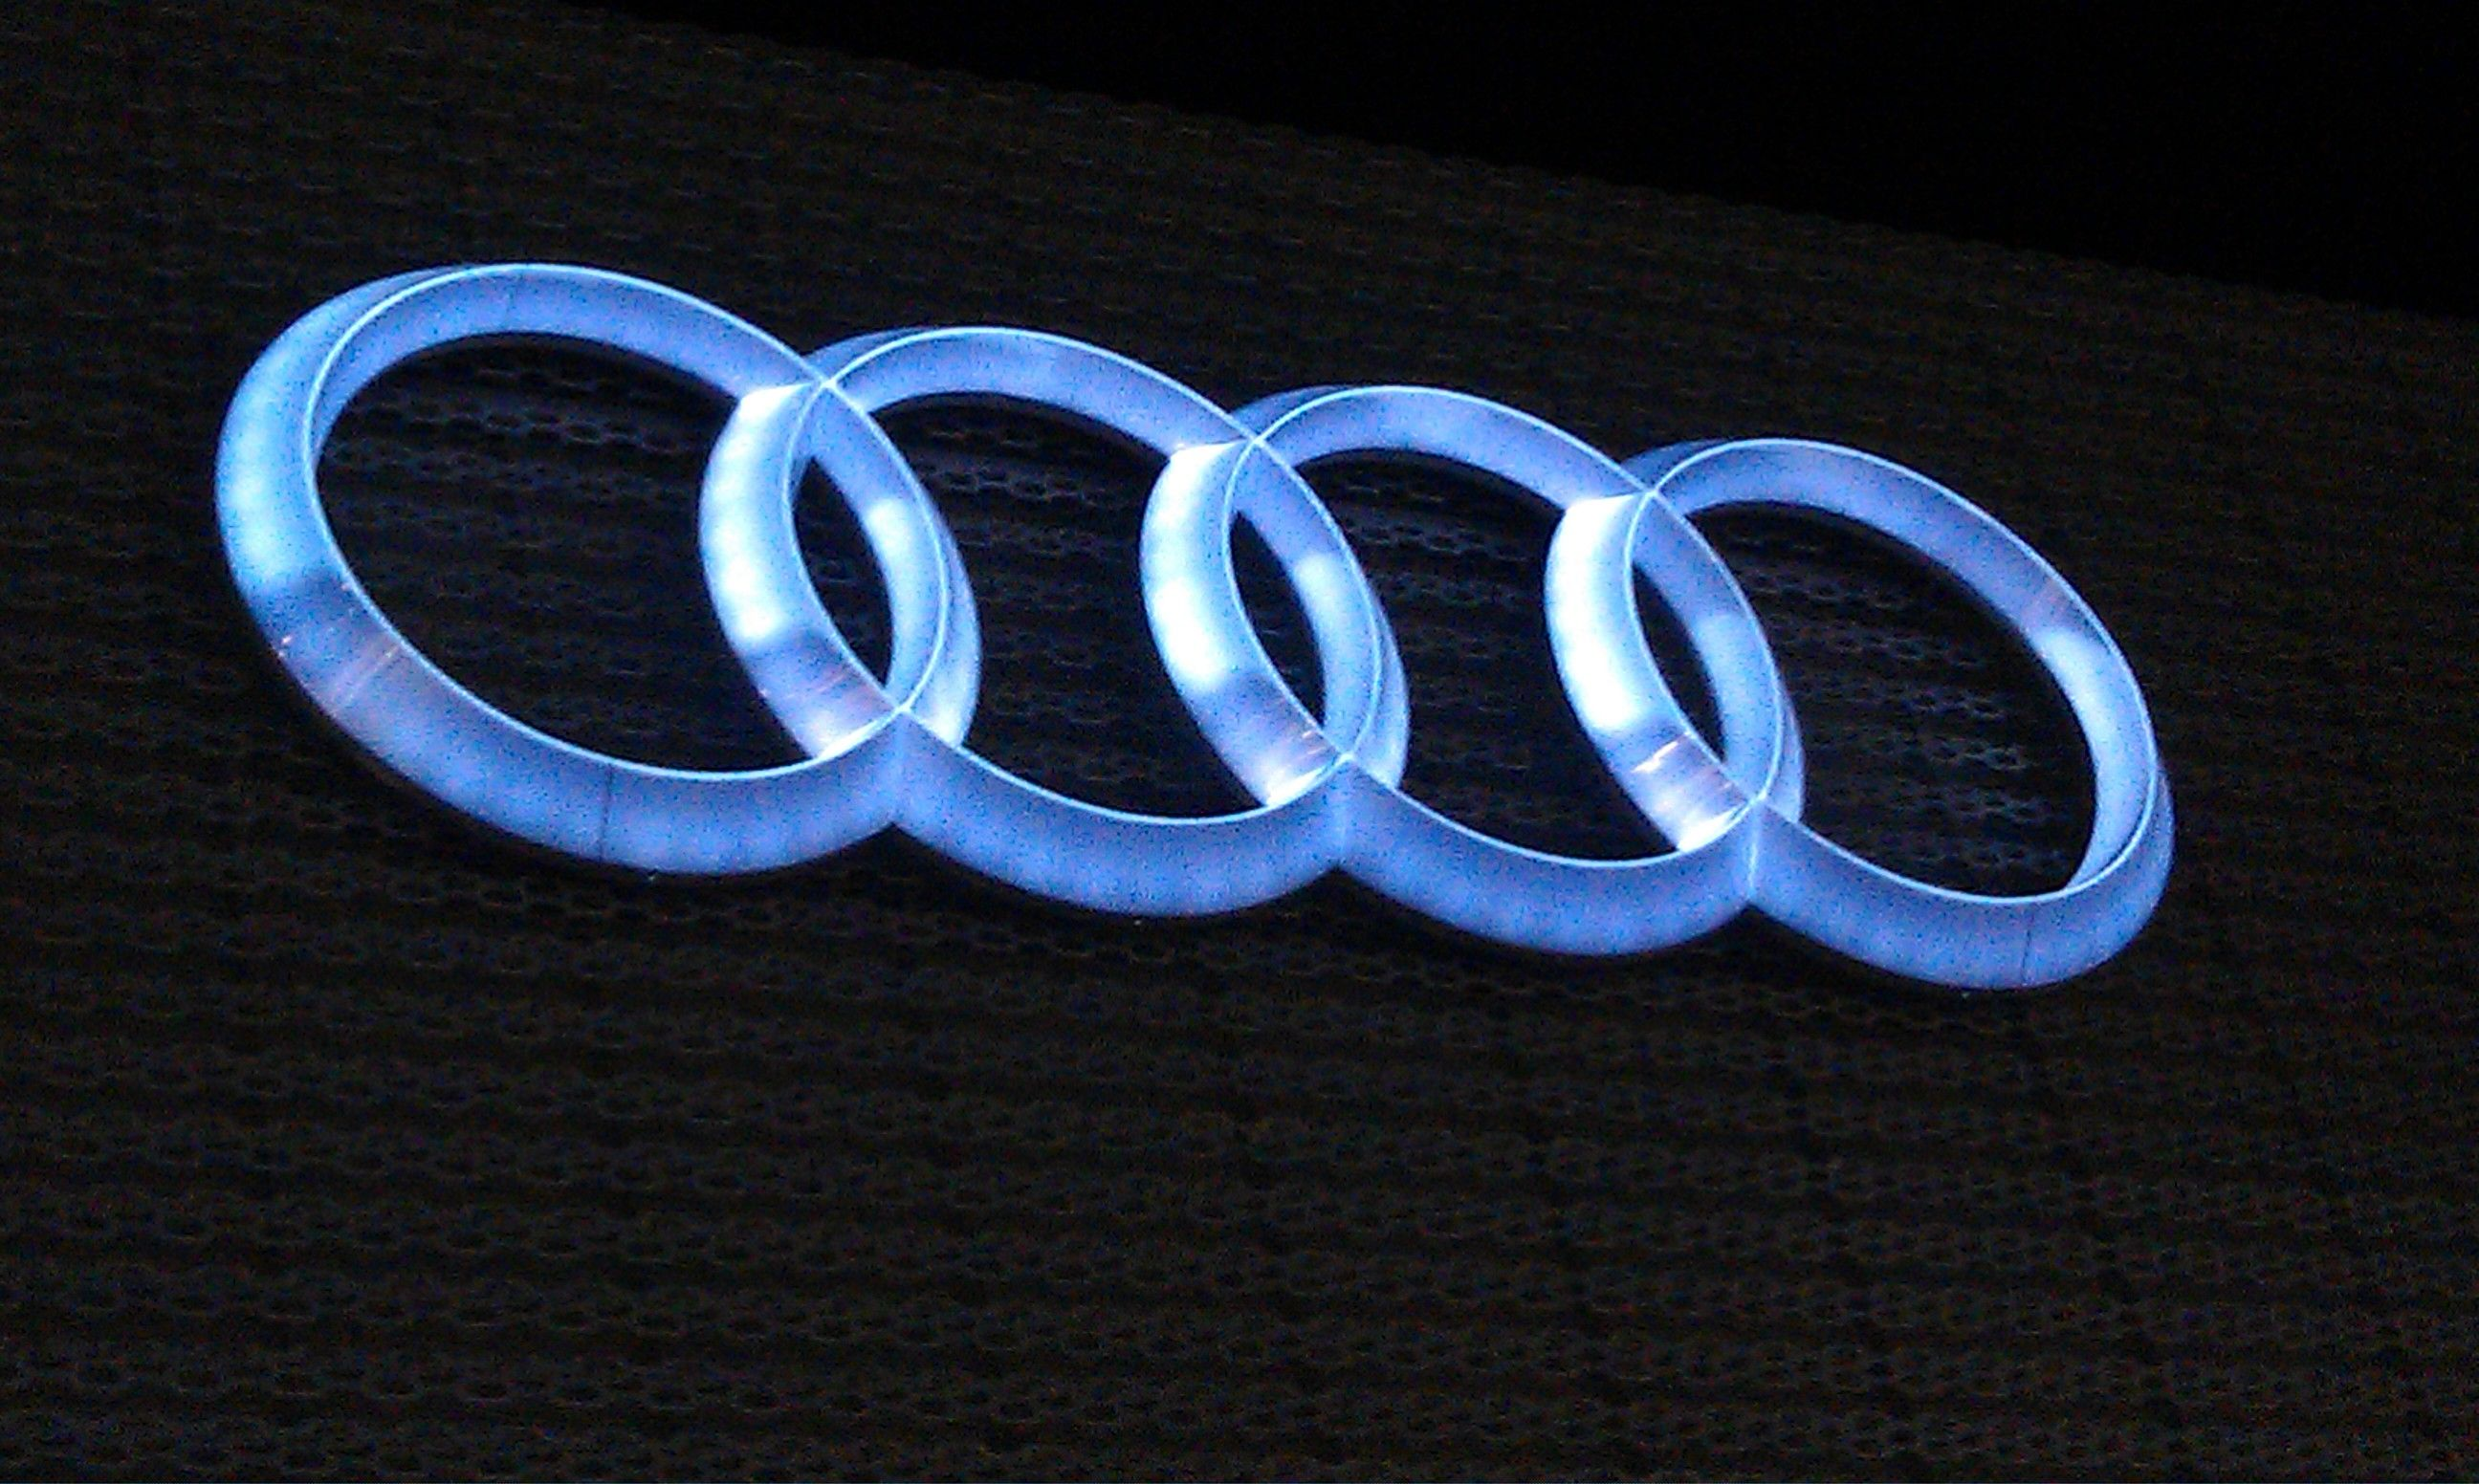 Pin By Dale Copp On My Secret Obsession Audi Audi Logo Vehicle